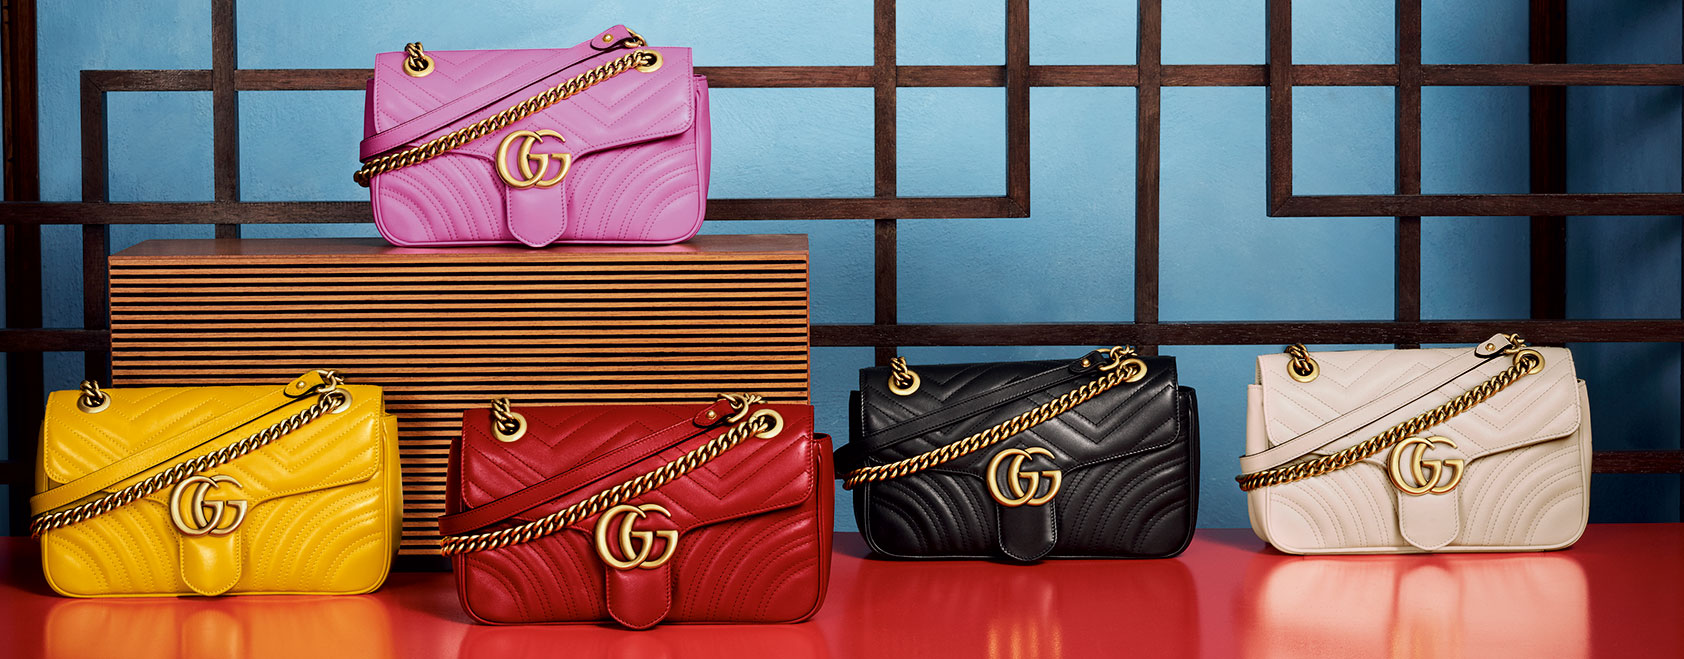 0f045e163 Gucci GG MARMONT purse, a new look for this Fall/ Winter 2016-2017 ...